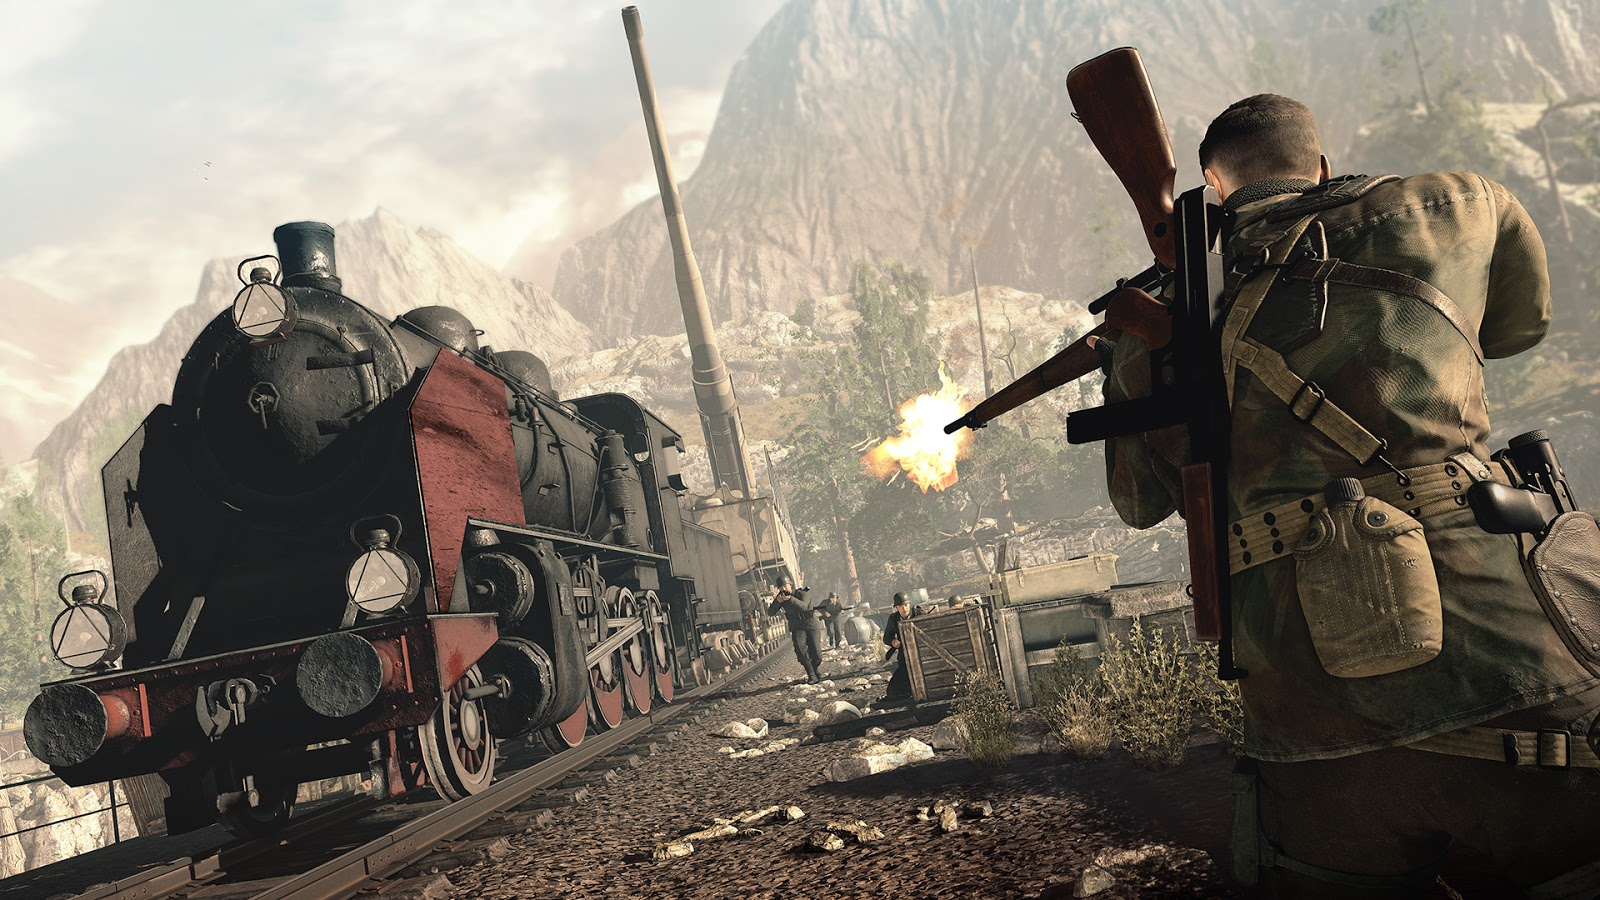 Sniper Elite 4 PC - Sniper Elite 4 For PC